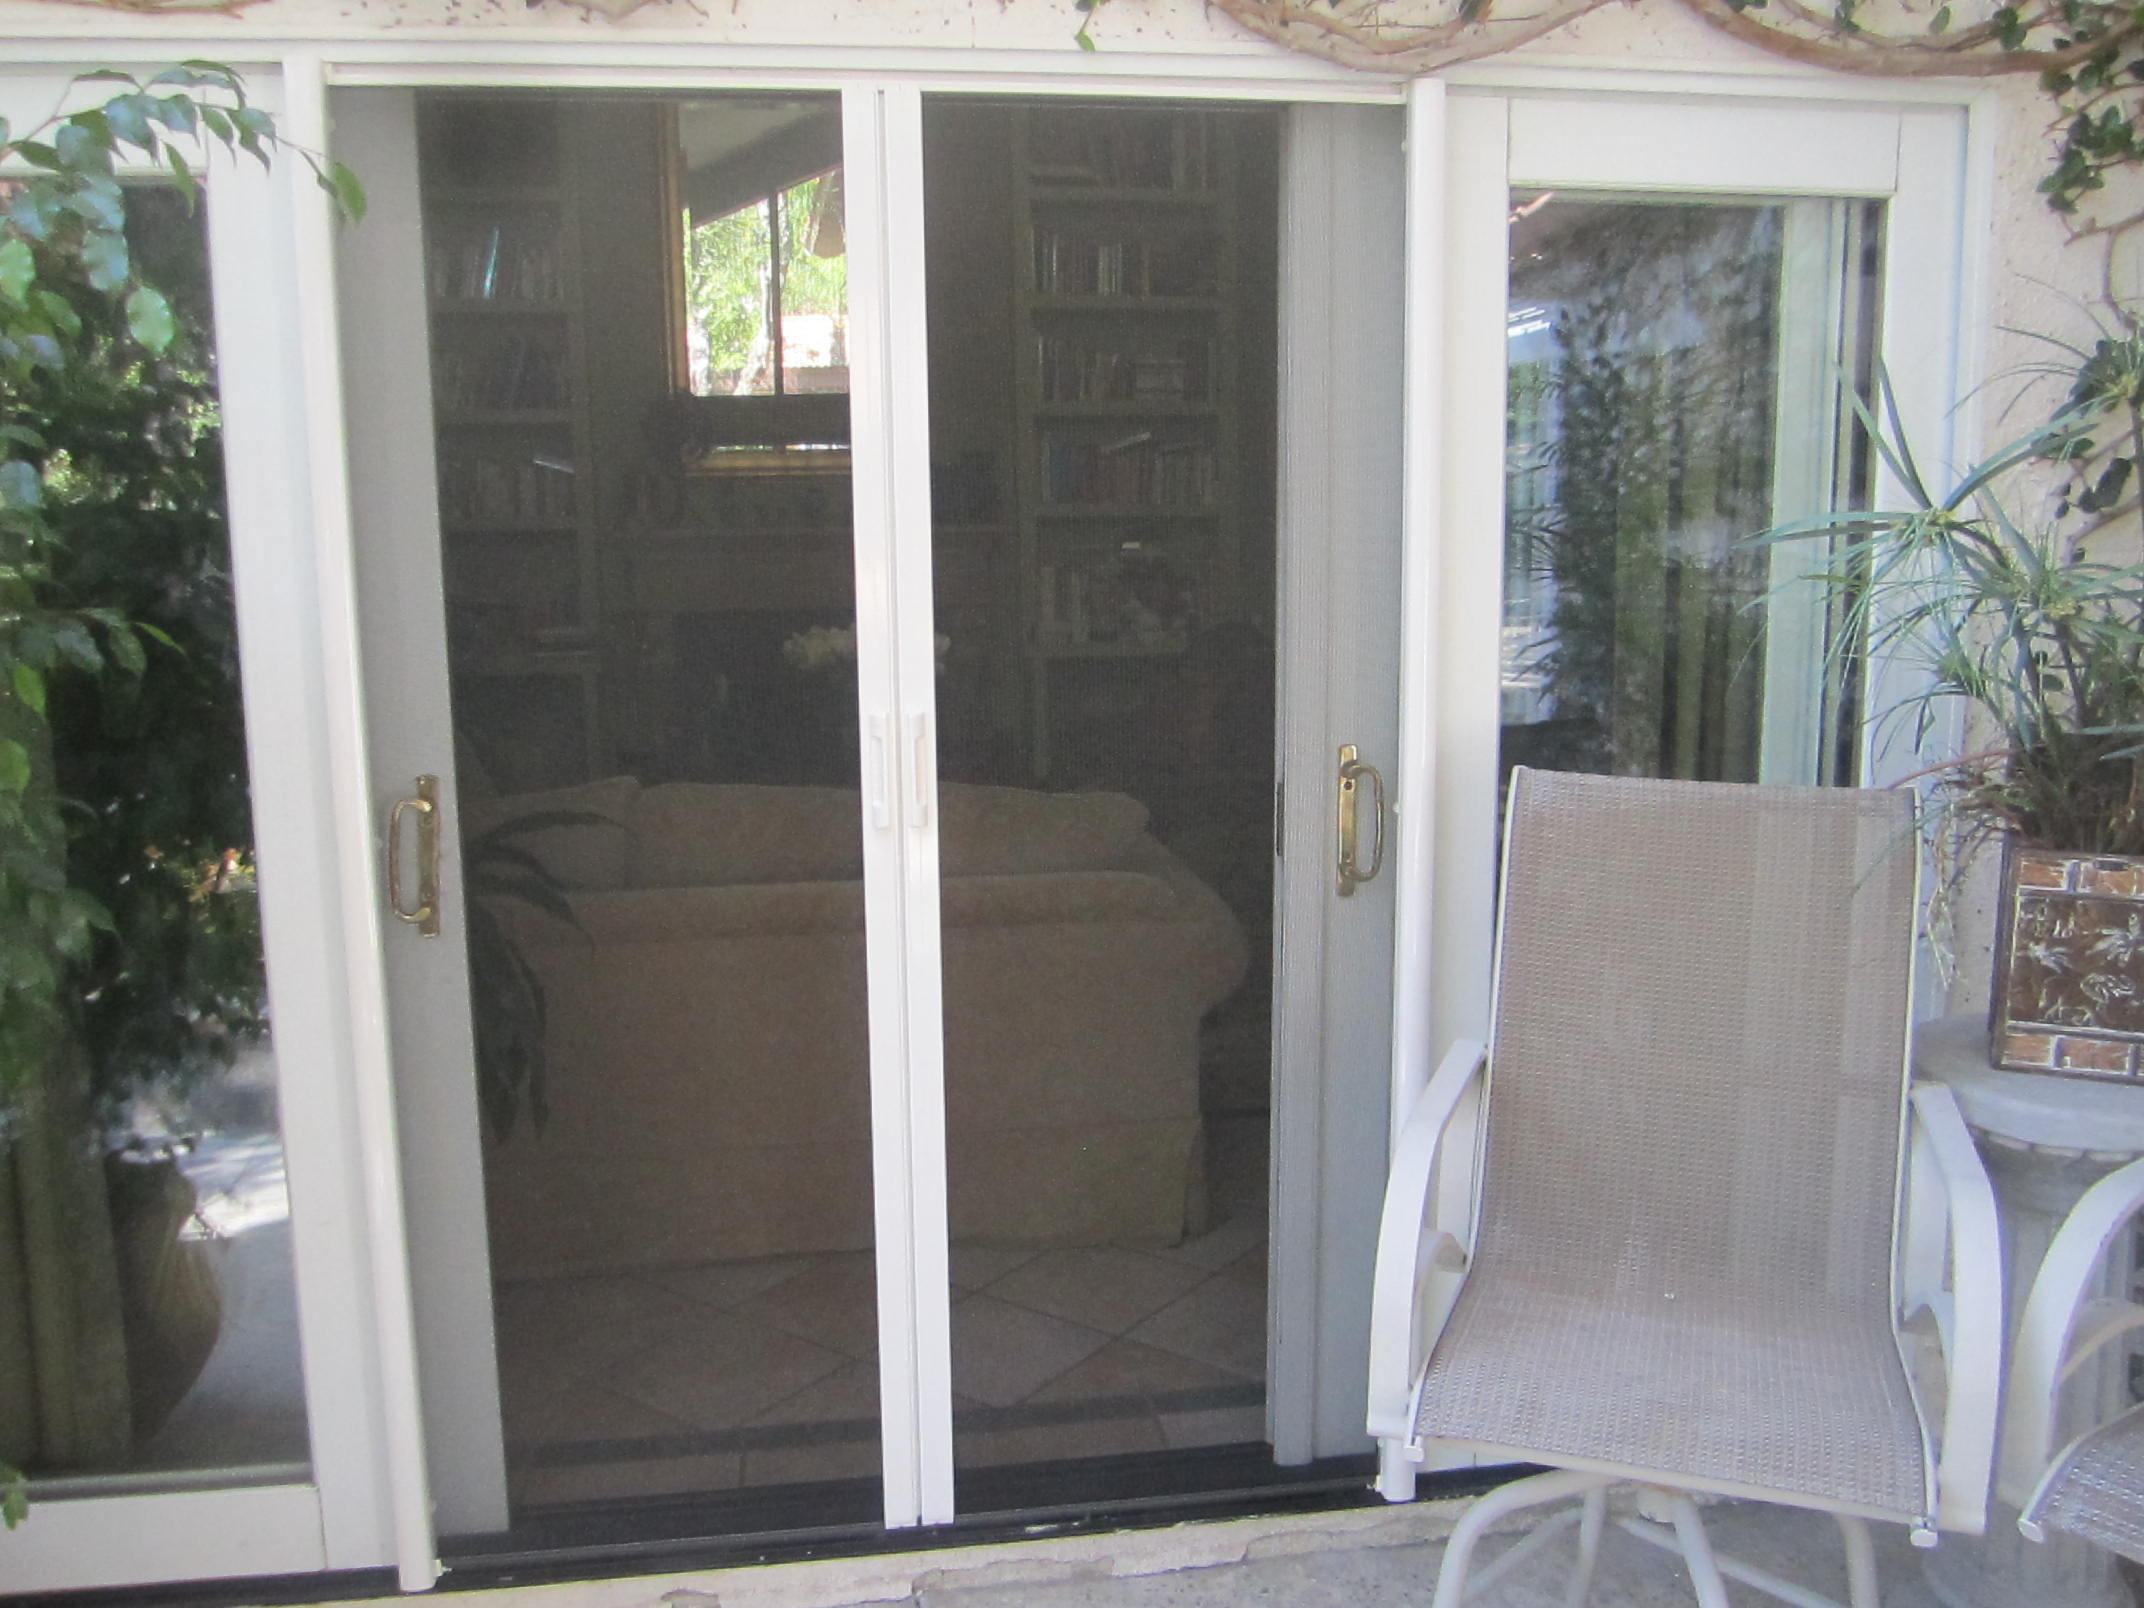 Van Nuys Retractable Screen Doors |